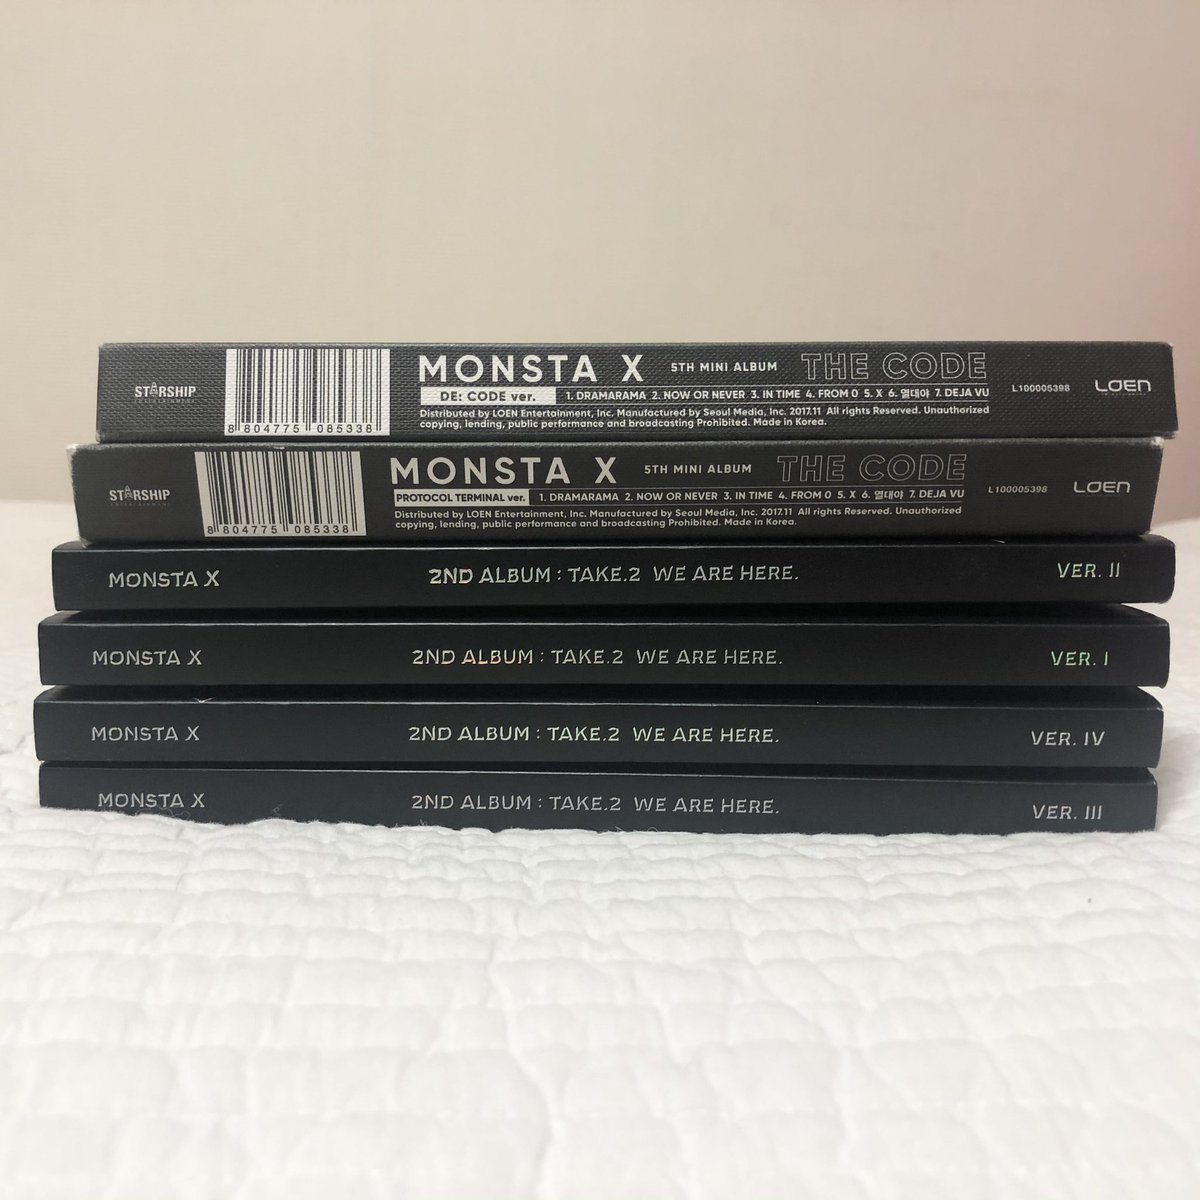 Im selling monsta x's album  dont dm me if your just gonna ask bunch of questions and not buy anything from me. otherwise feel free to dm me☺️  #몬스타엑스 #monstax #im #jooheon #minhyuk #hyungwon #shownu #kihyun #monbebe #셔누 #손현우 #민혁 #기현 #형원 #주헌 #아이엠 #임창균